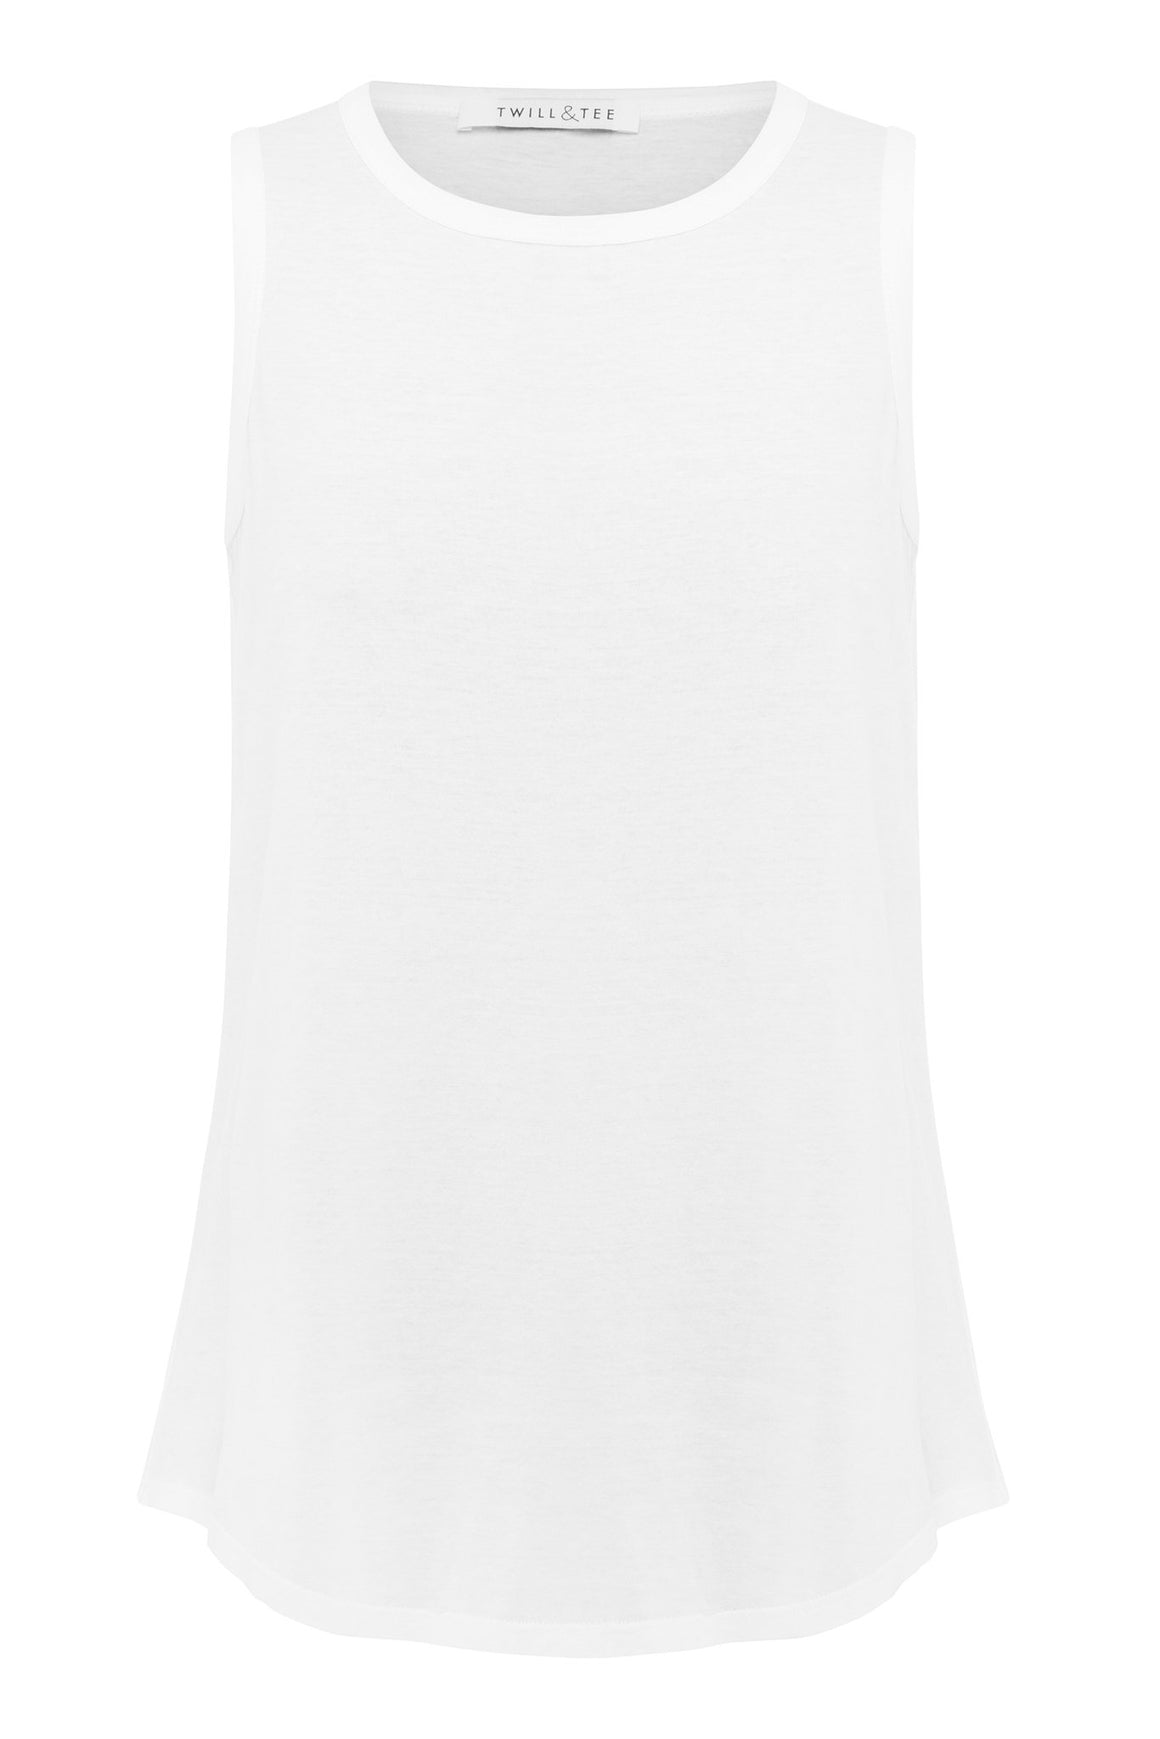 Racer Back Singlet | White